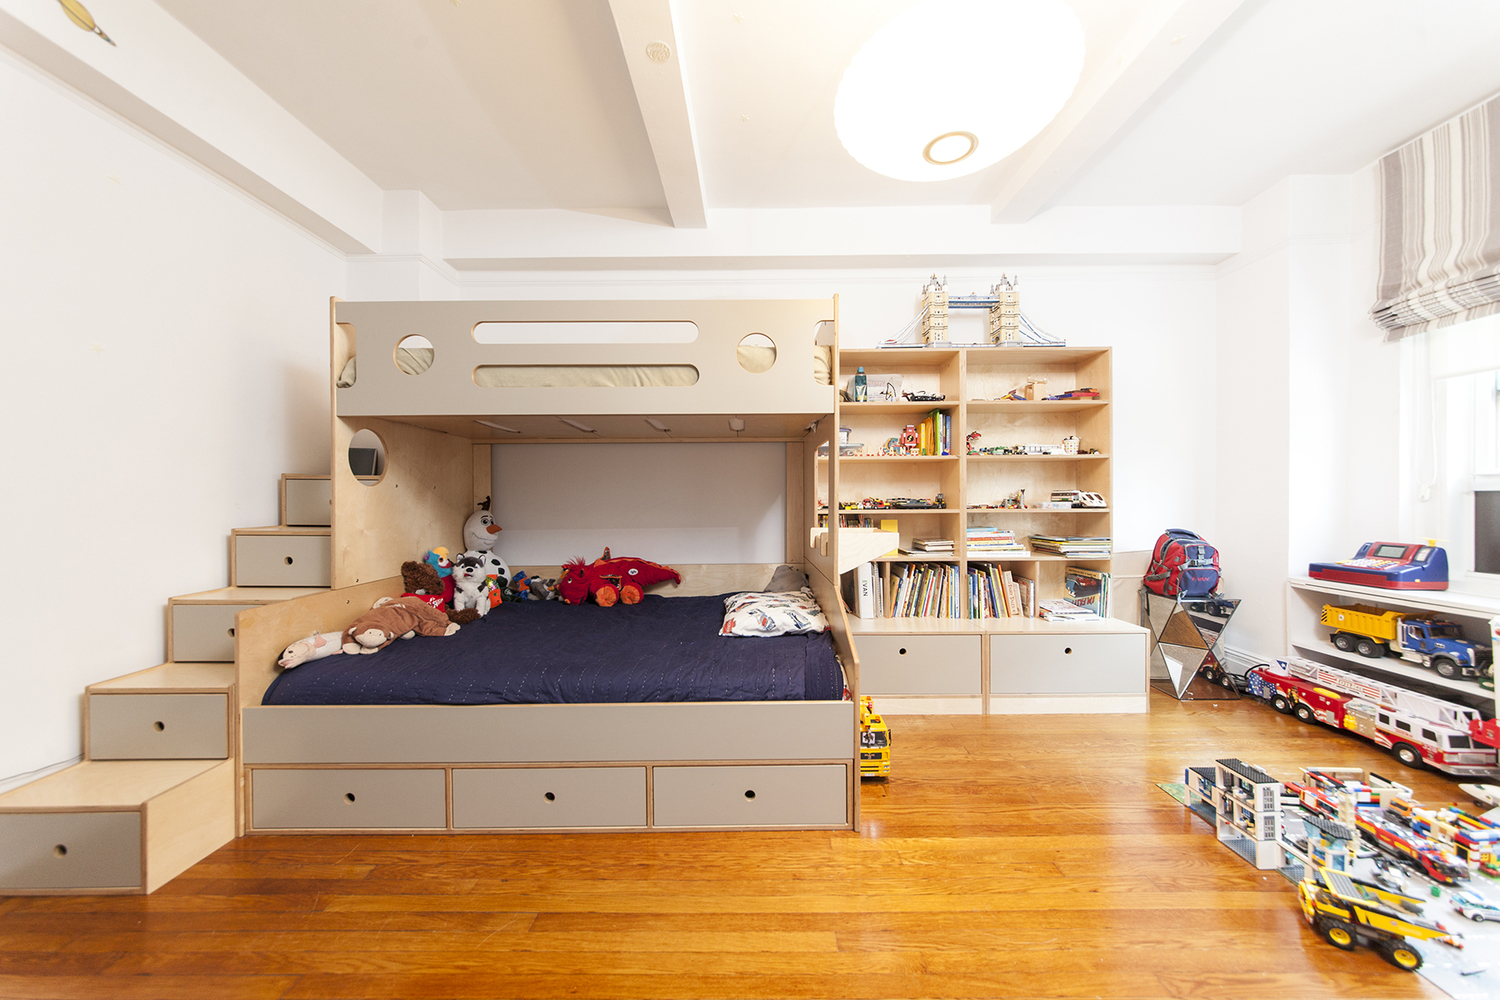 Casa Kids custom twin over full bunk bed. Low VOC plywood furniture.